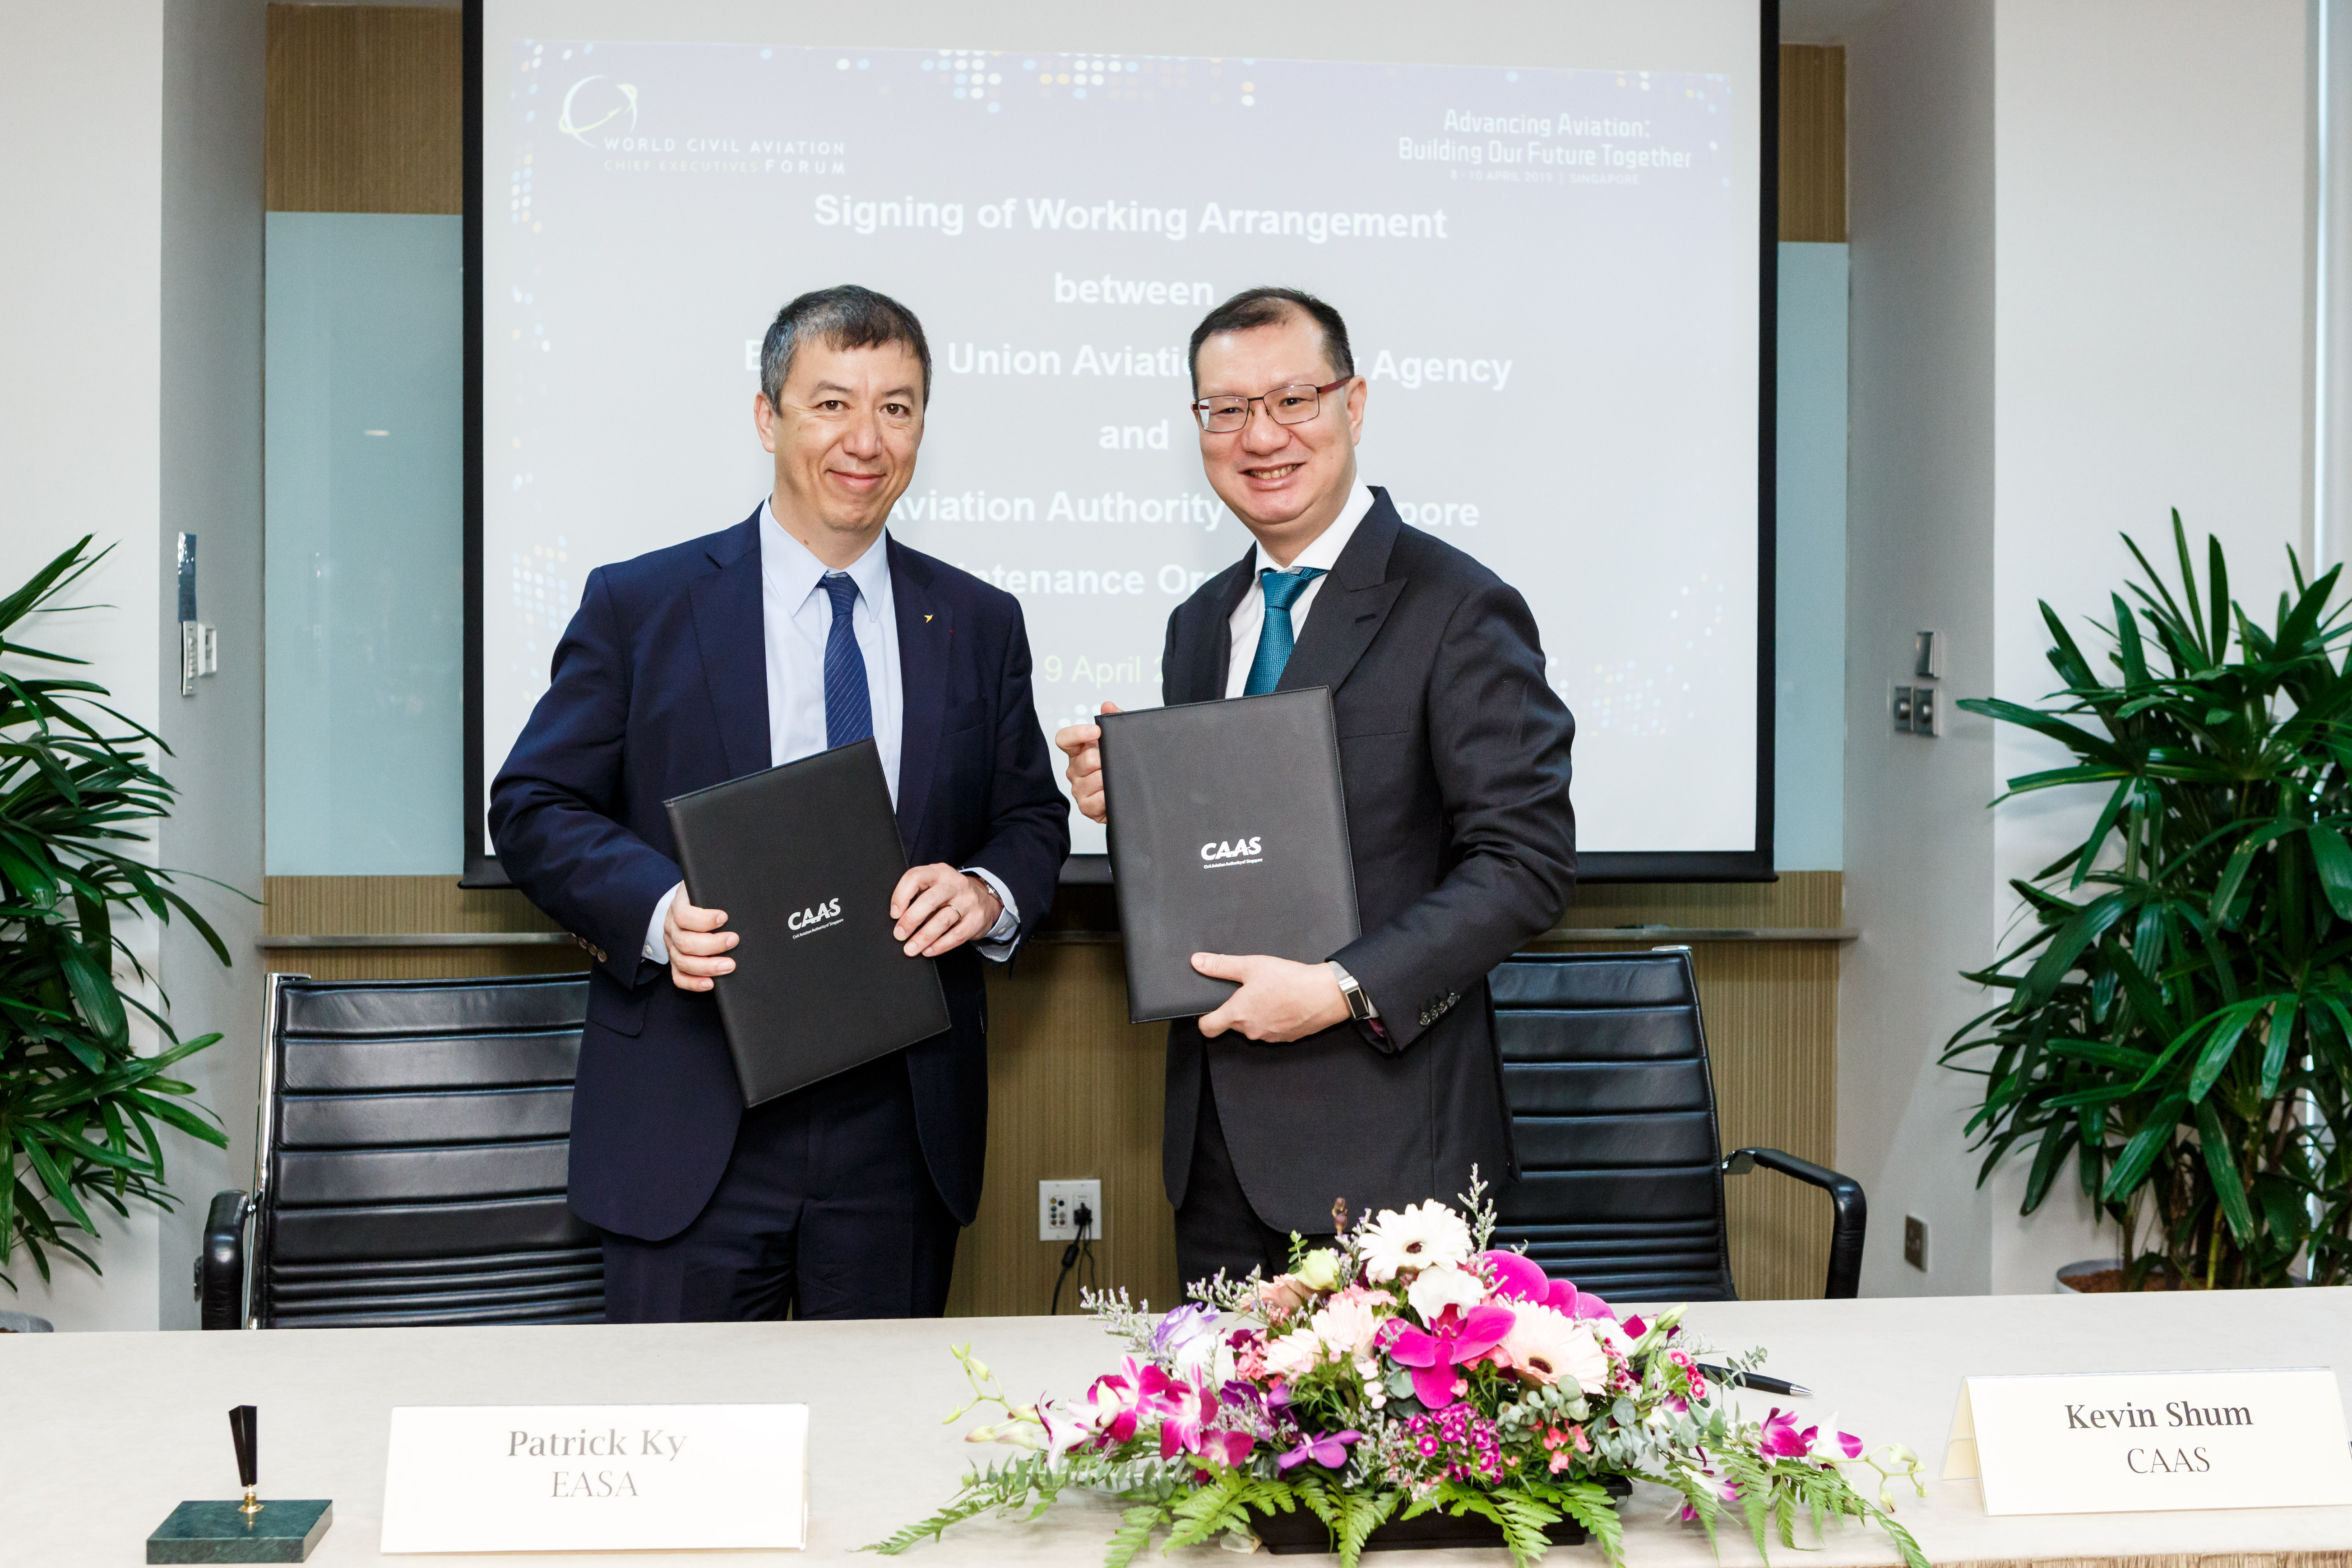 CAAS and EASA Strengthen Collaboration with New Working Arrangement on Aviation Maintenance